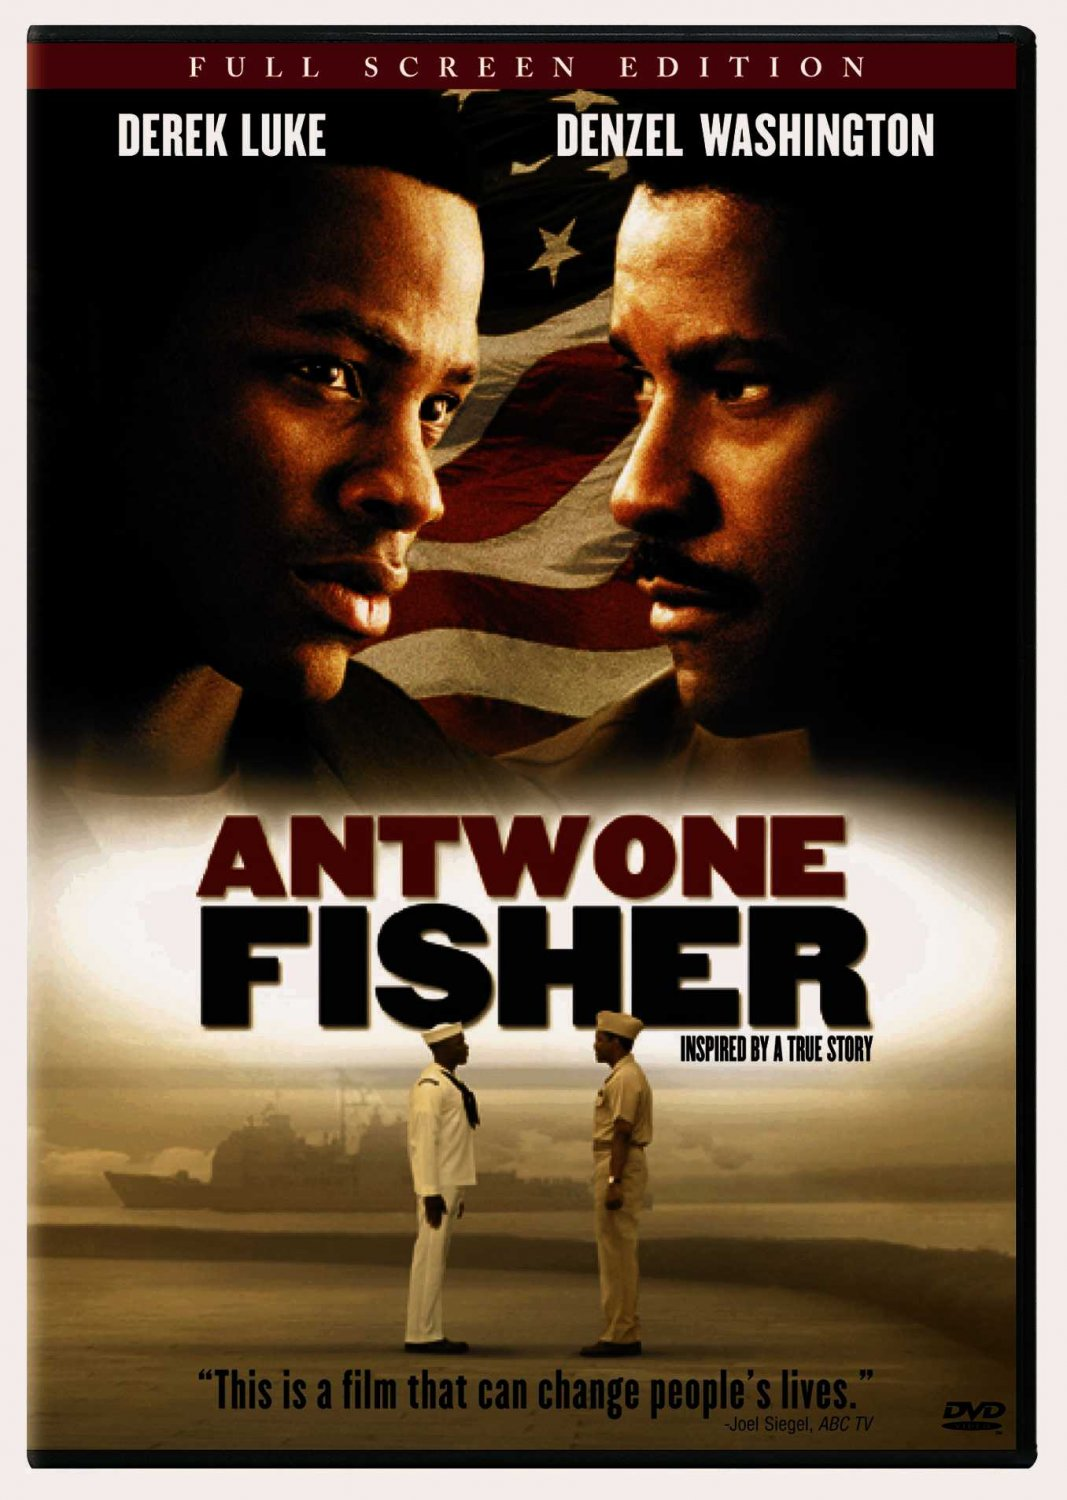 antwone fisher 1 Antwone fisher (2002) watch full movie in hd online on #1 movies 🎬totally free 🎬no registration 🎬high-quality 🎬soundtracks and reviews.